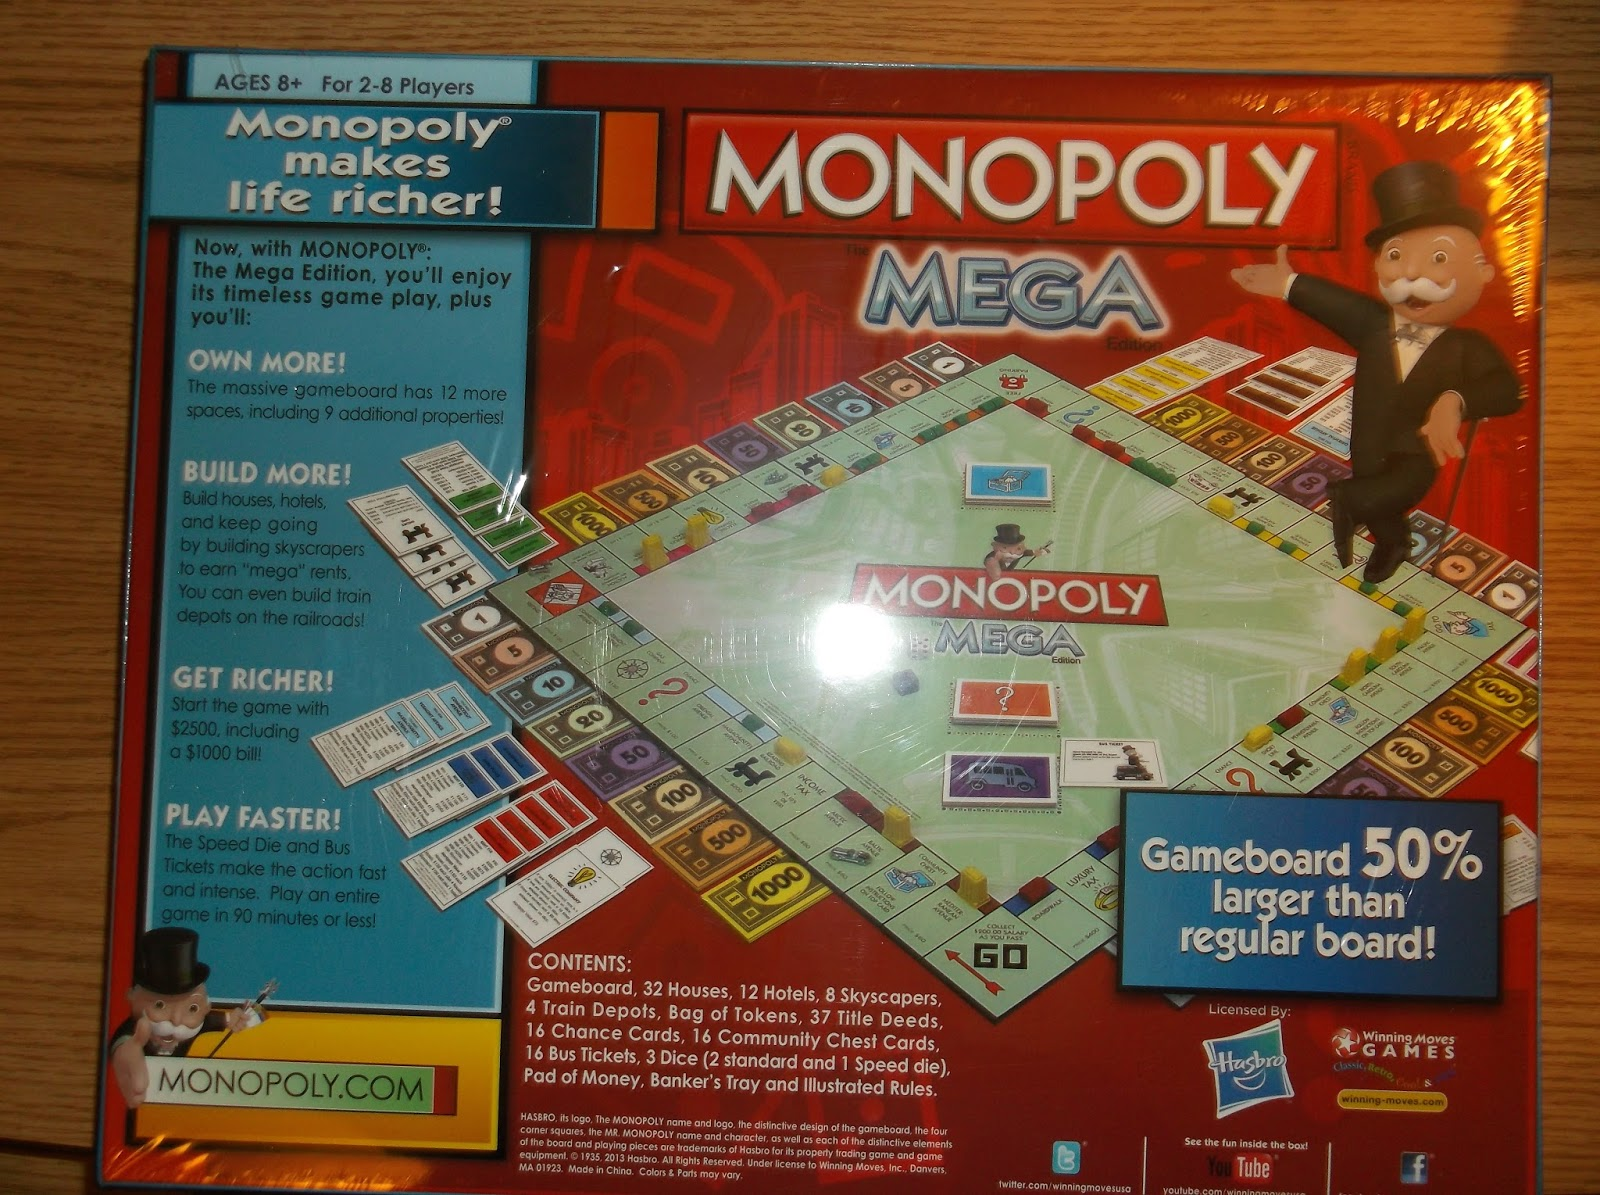 21 unique monopoly board game versions you can buy online.